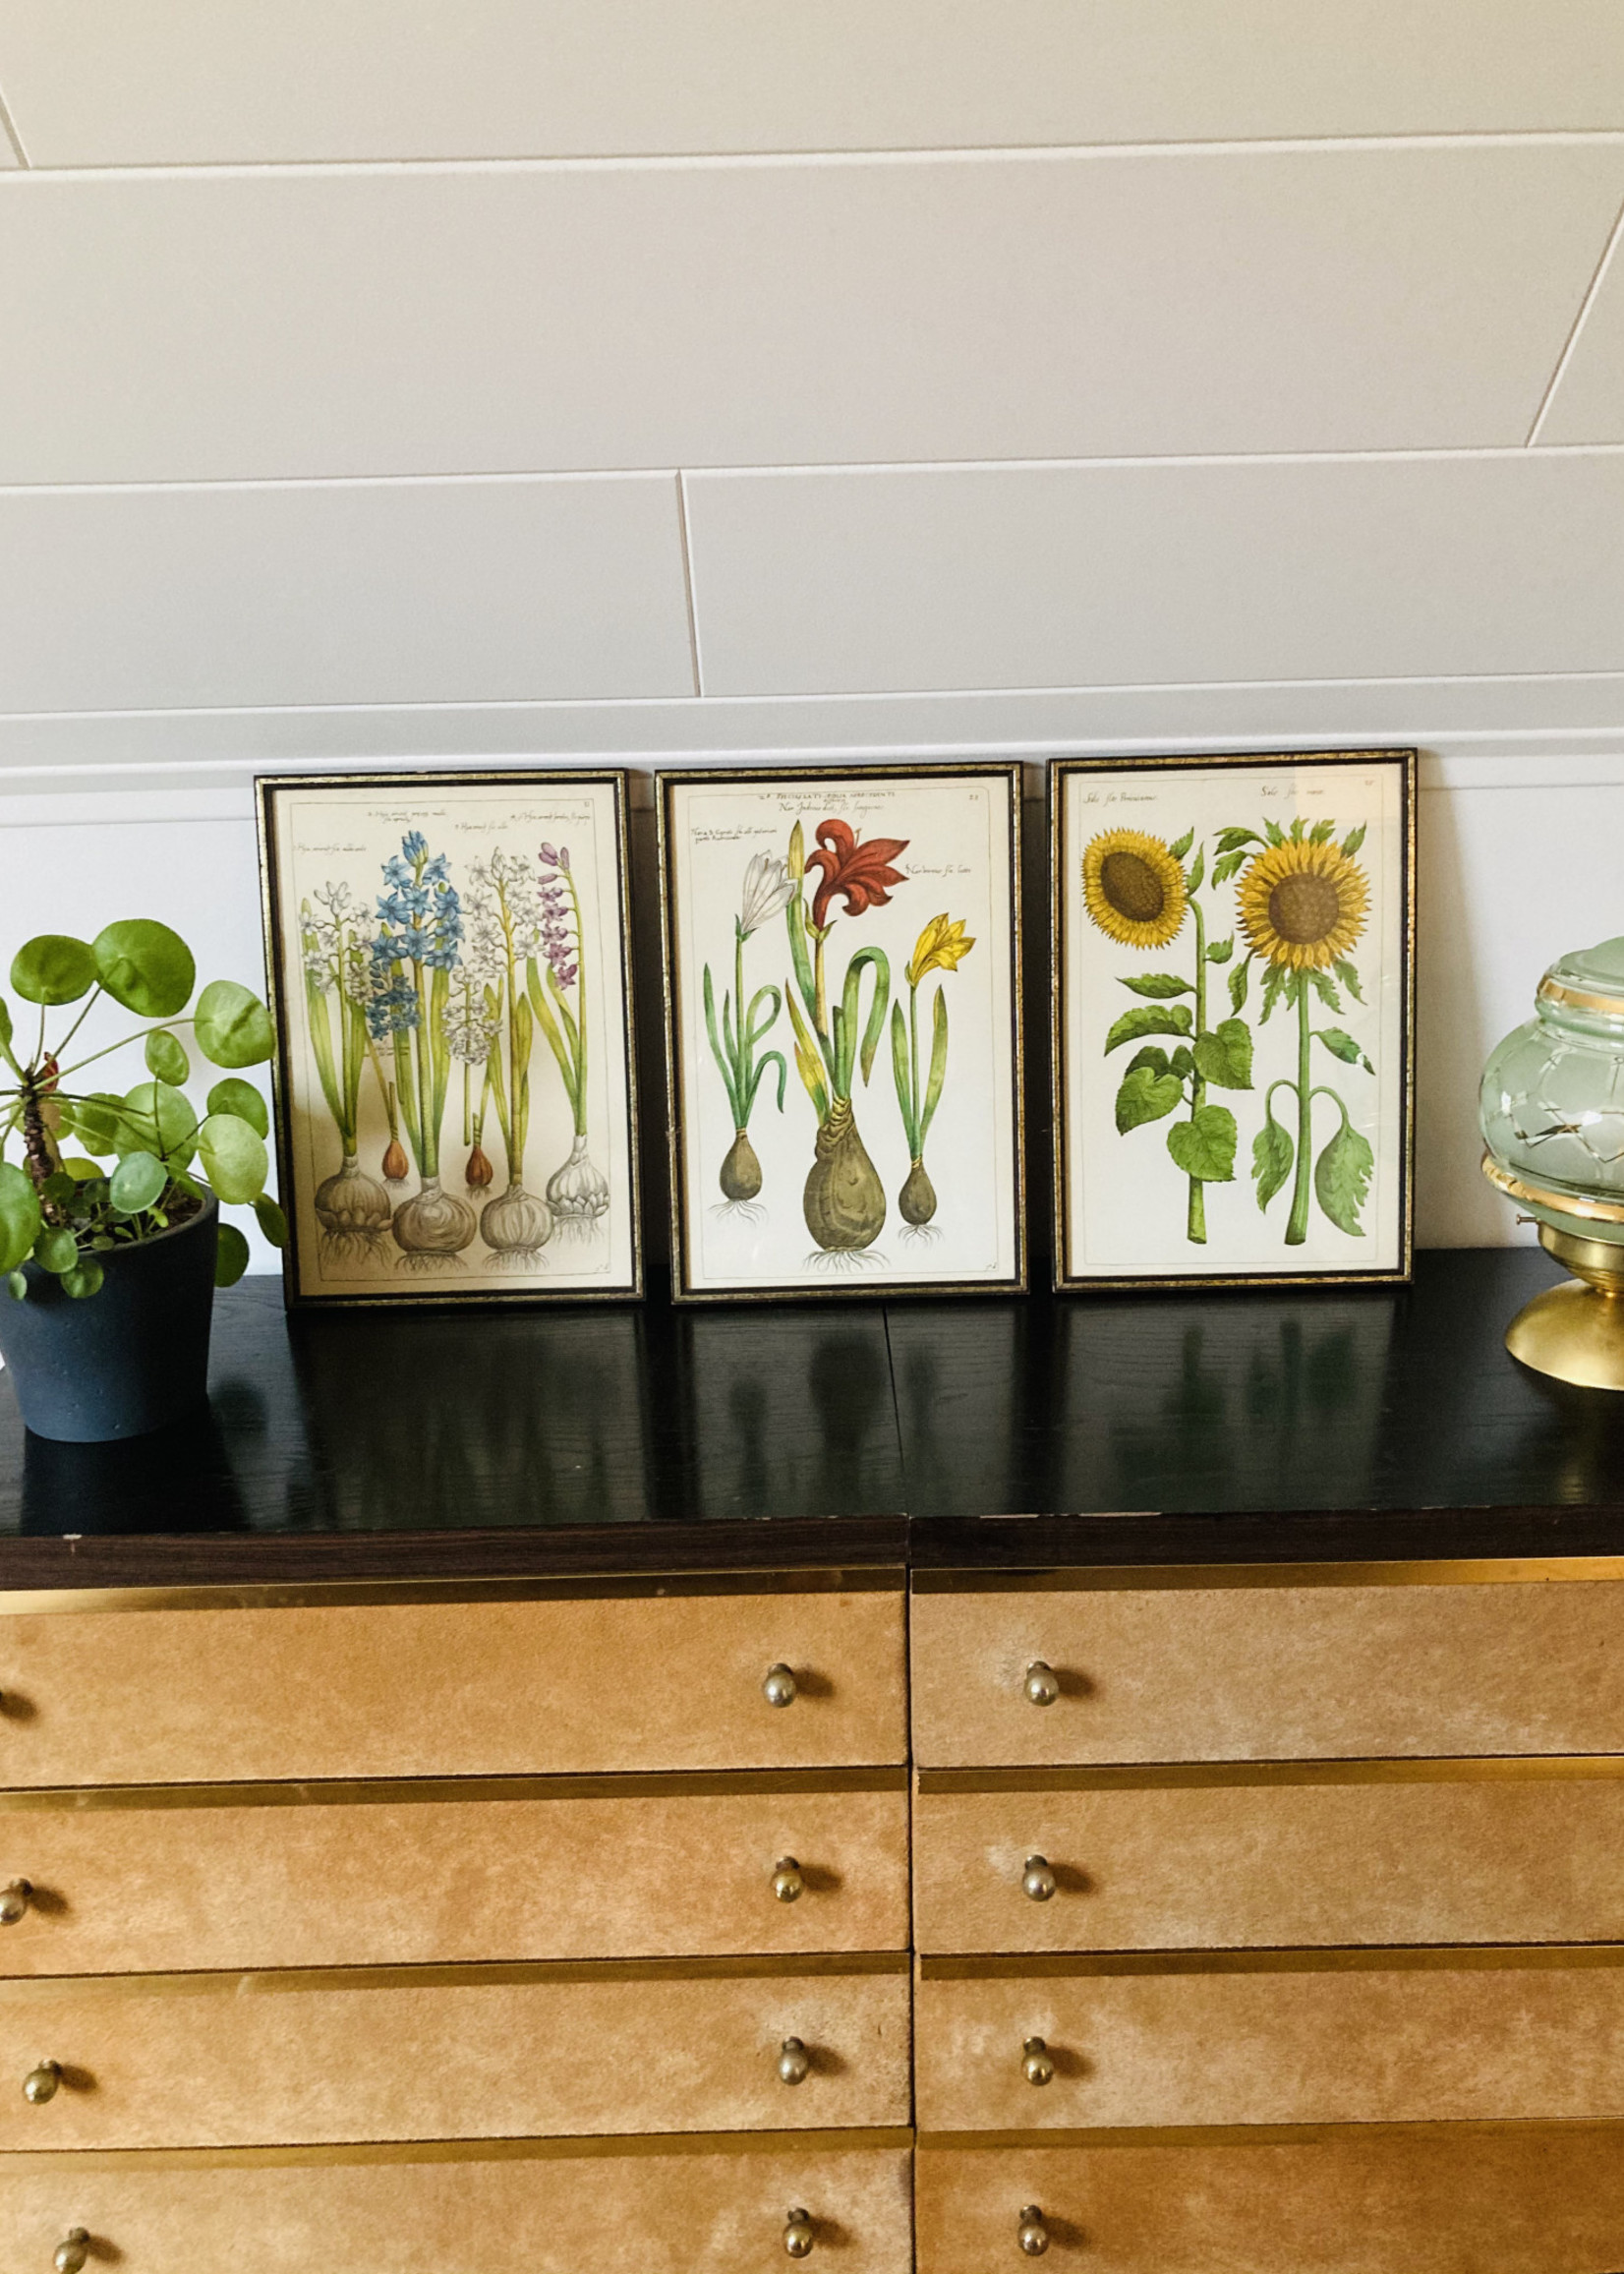 elongated frames with colourful lithographs of flowers (sunflower)